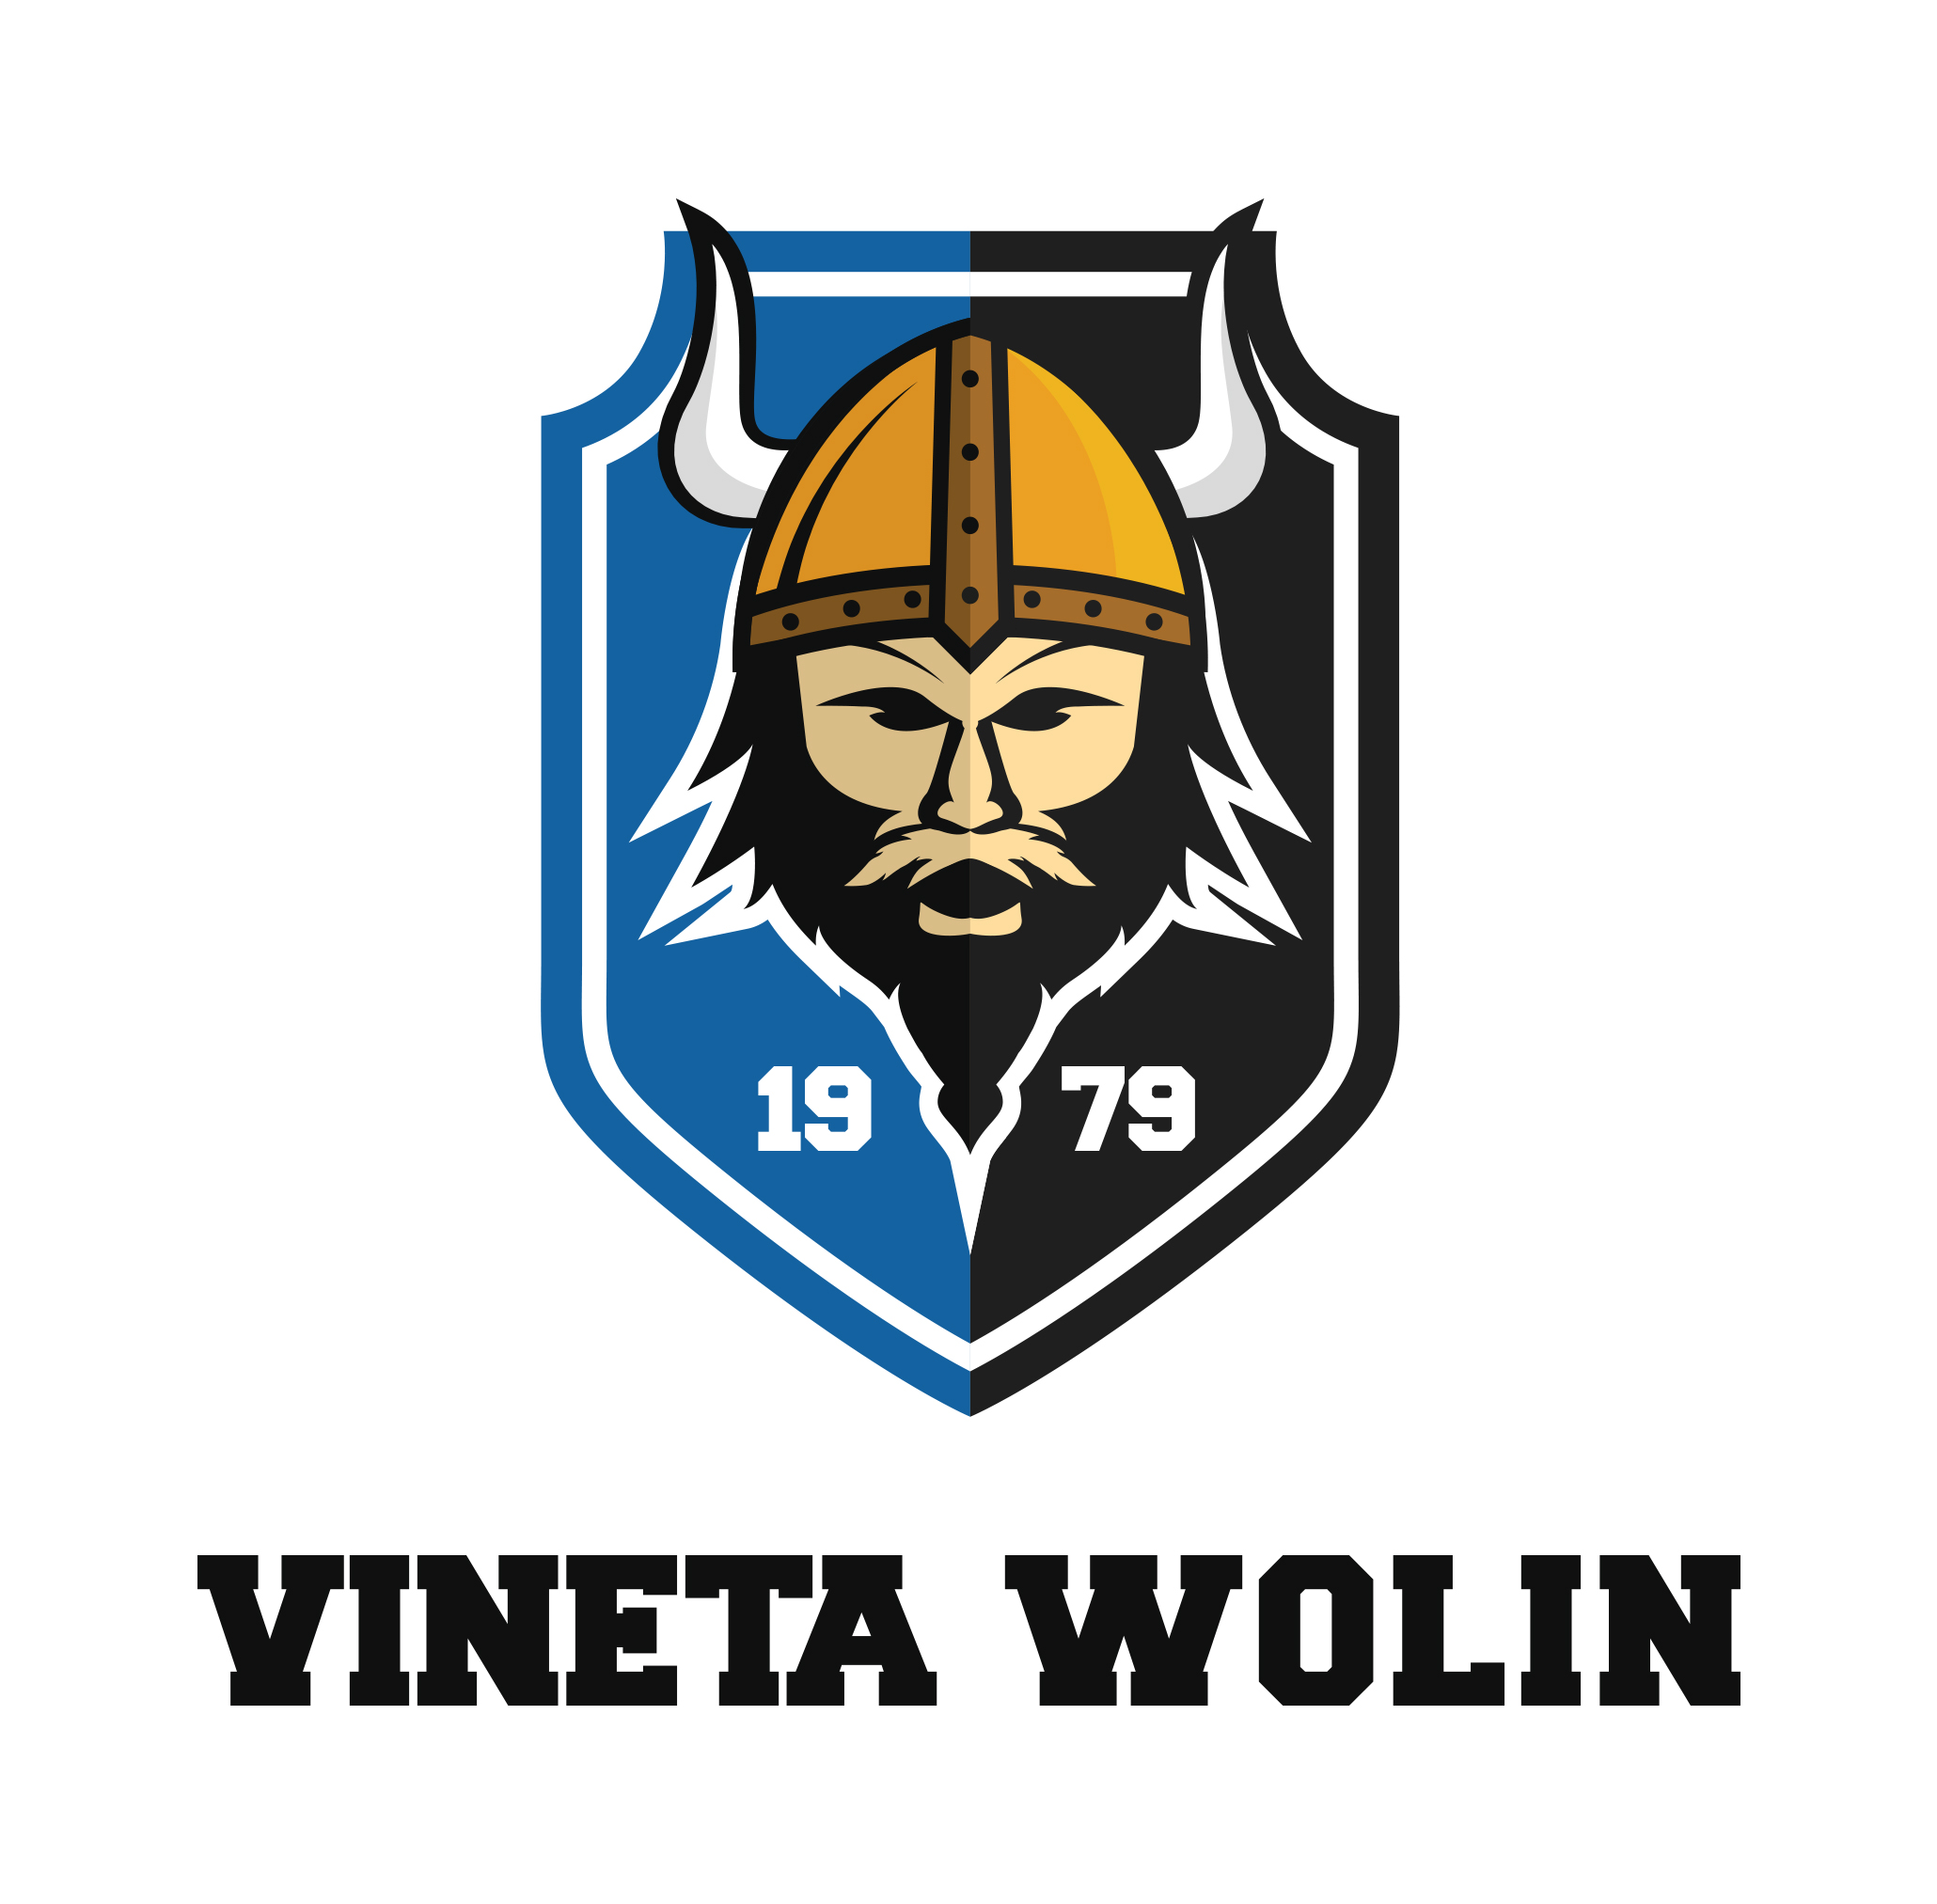 VINETA Wolin